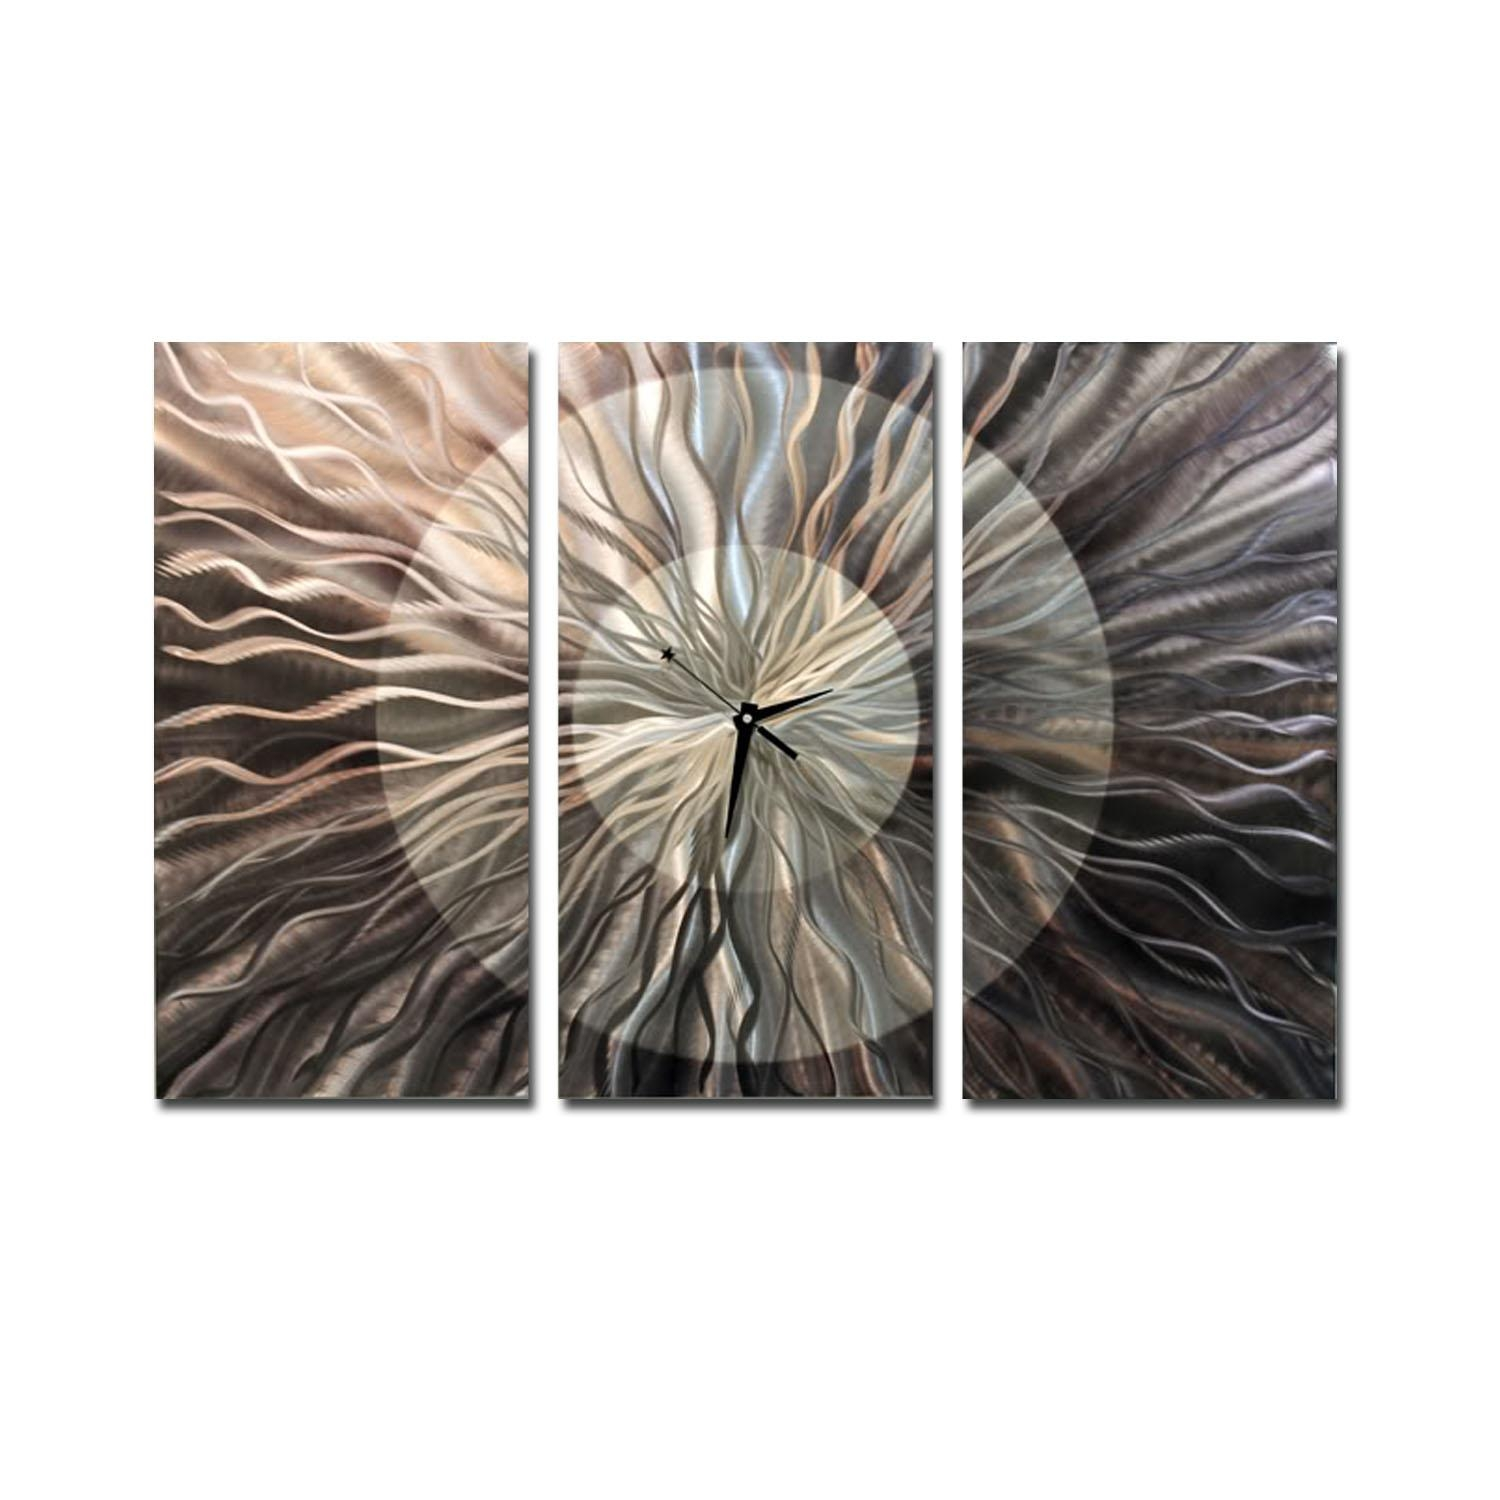 Obsidian Burst Clock – Electric & Unique Silver Metal Wall Clock Throughout 3 Piece Modern Wall Art (View 13 of 20)